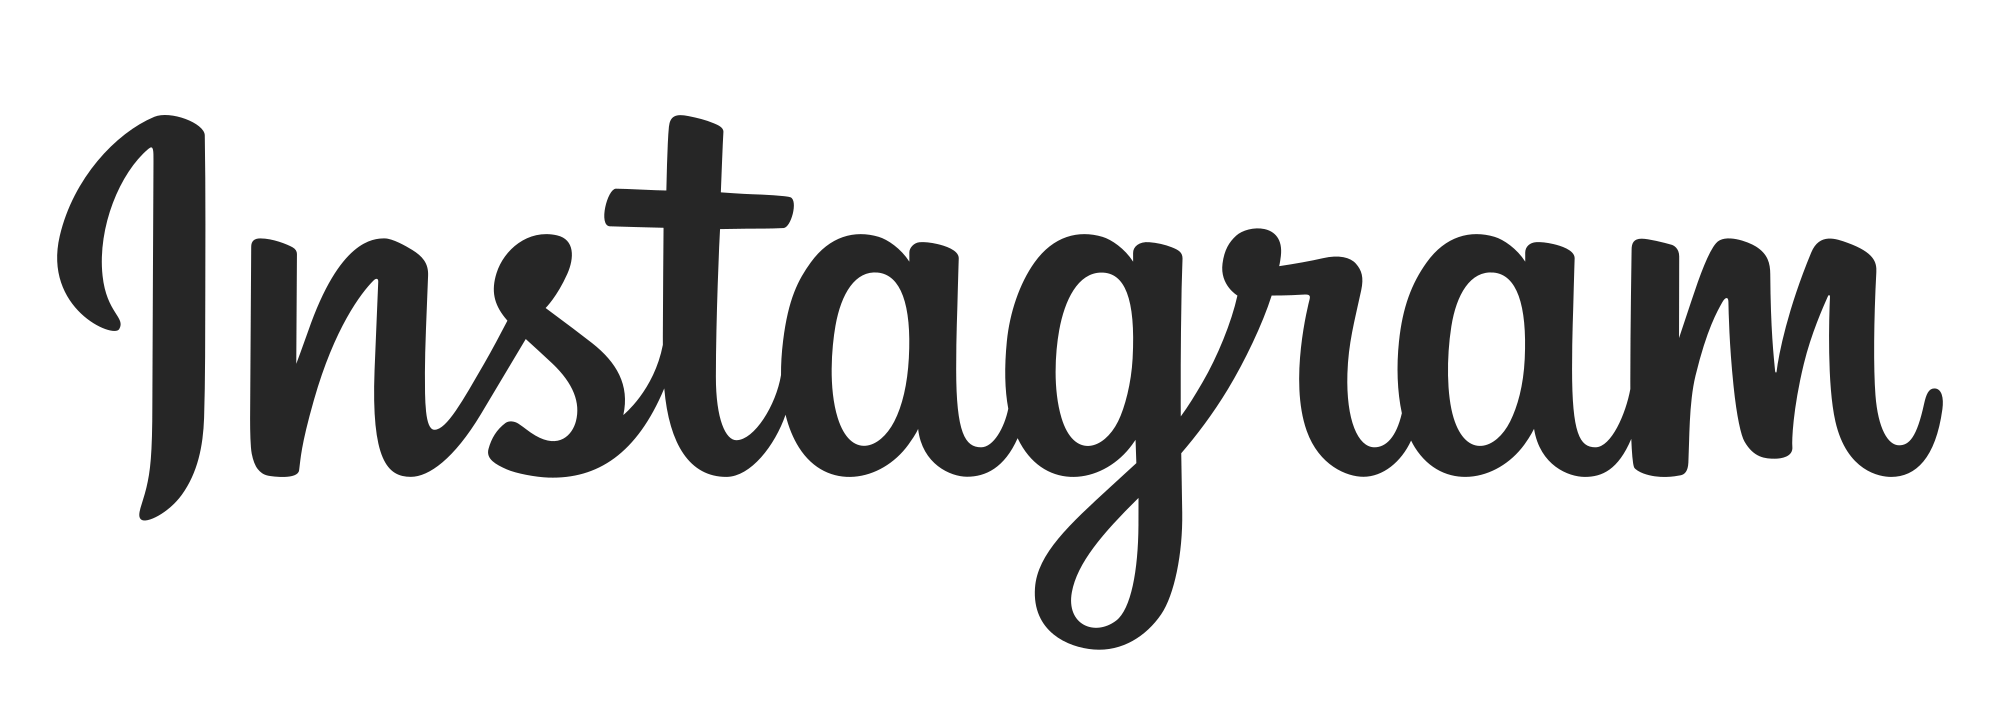 Instagram logo png 2016. File svg wikimedia commons